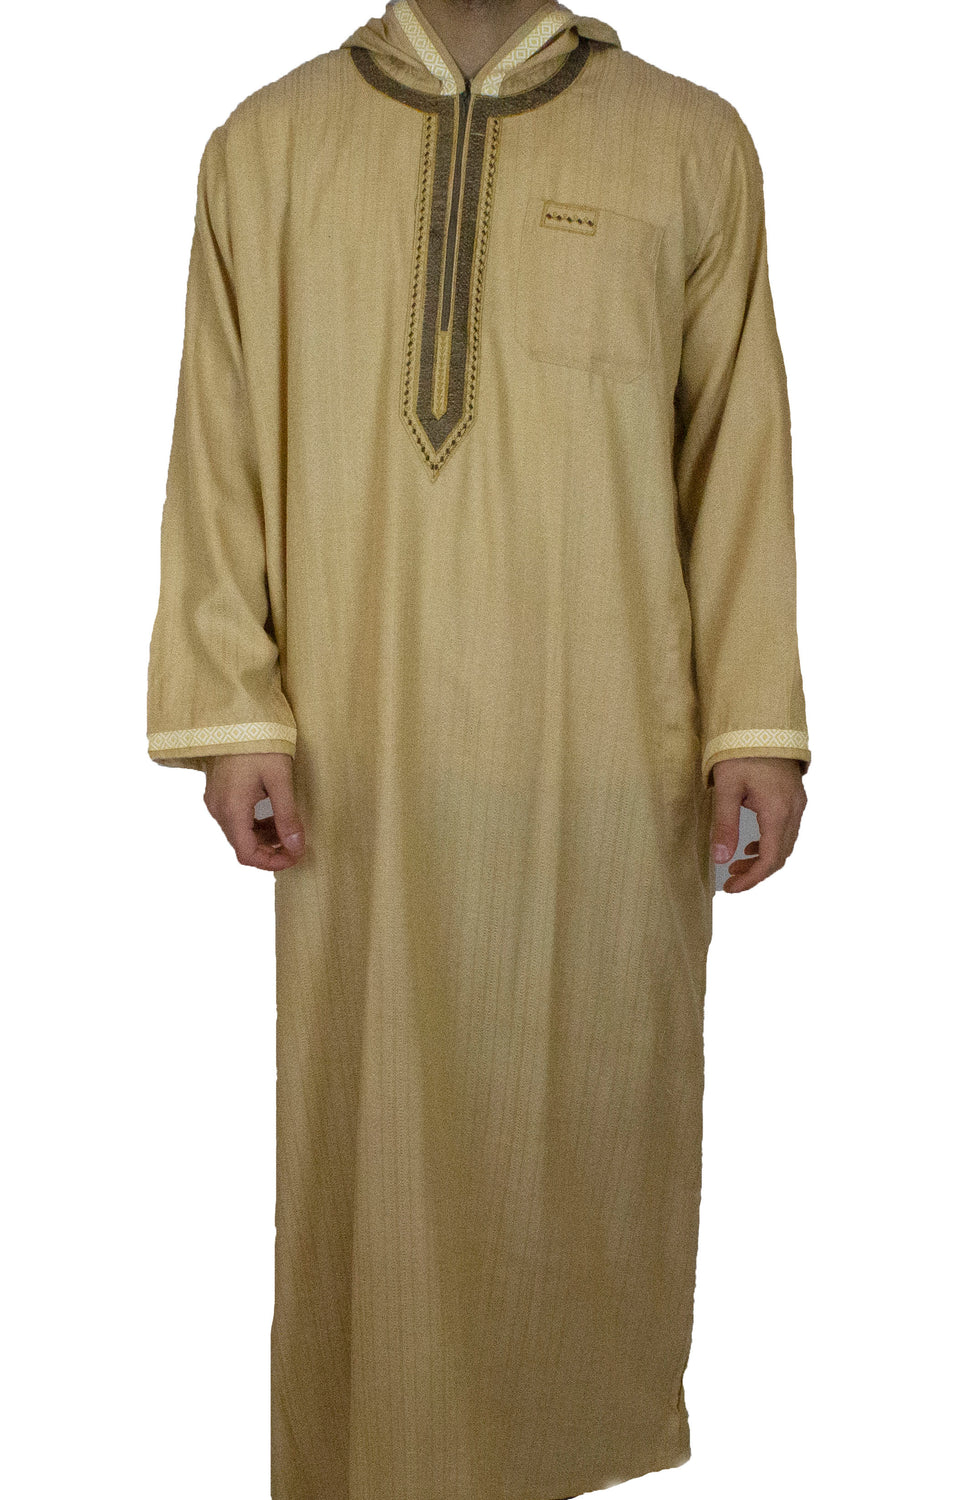 Men's Hooded Thobe - Gold and Brown